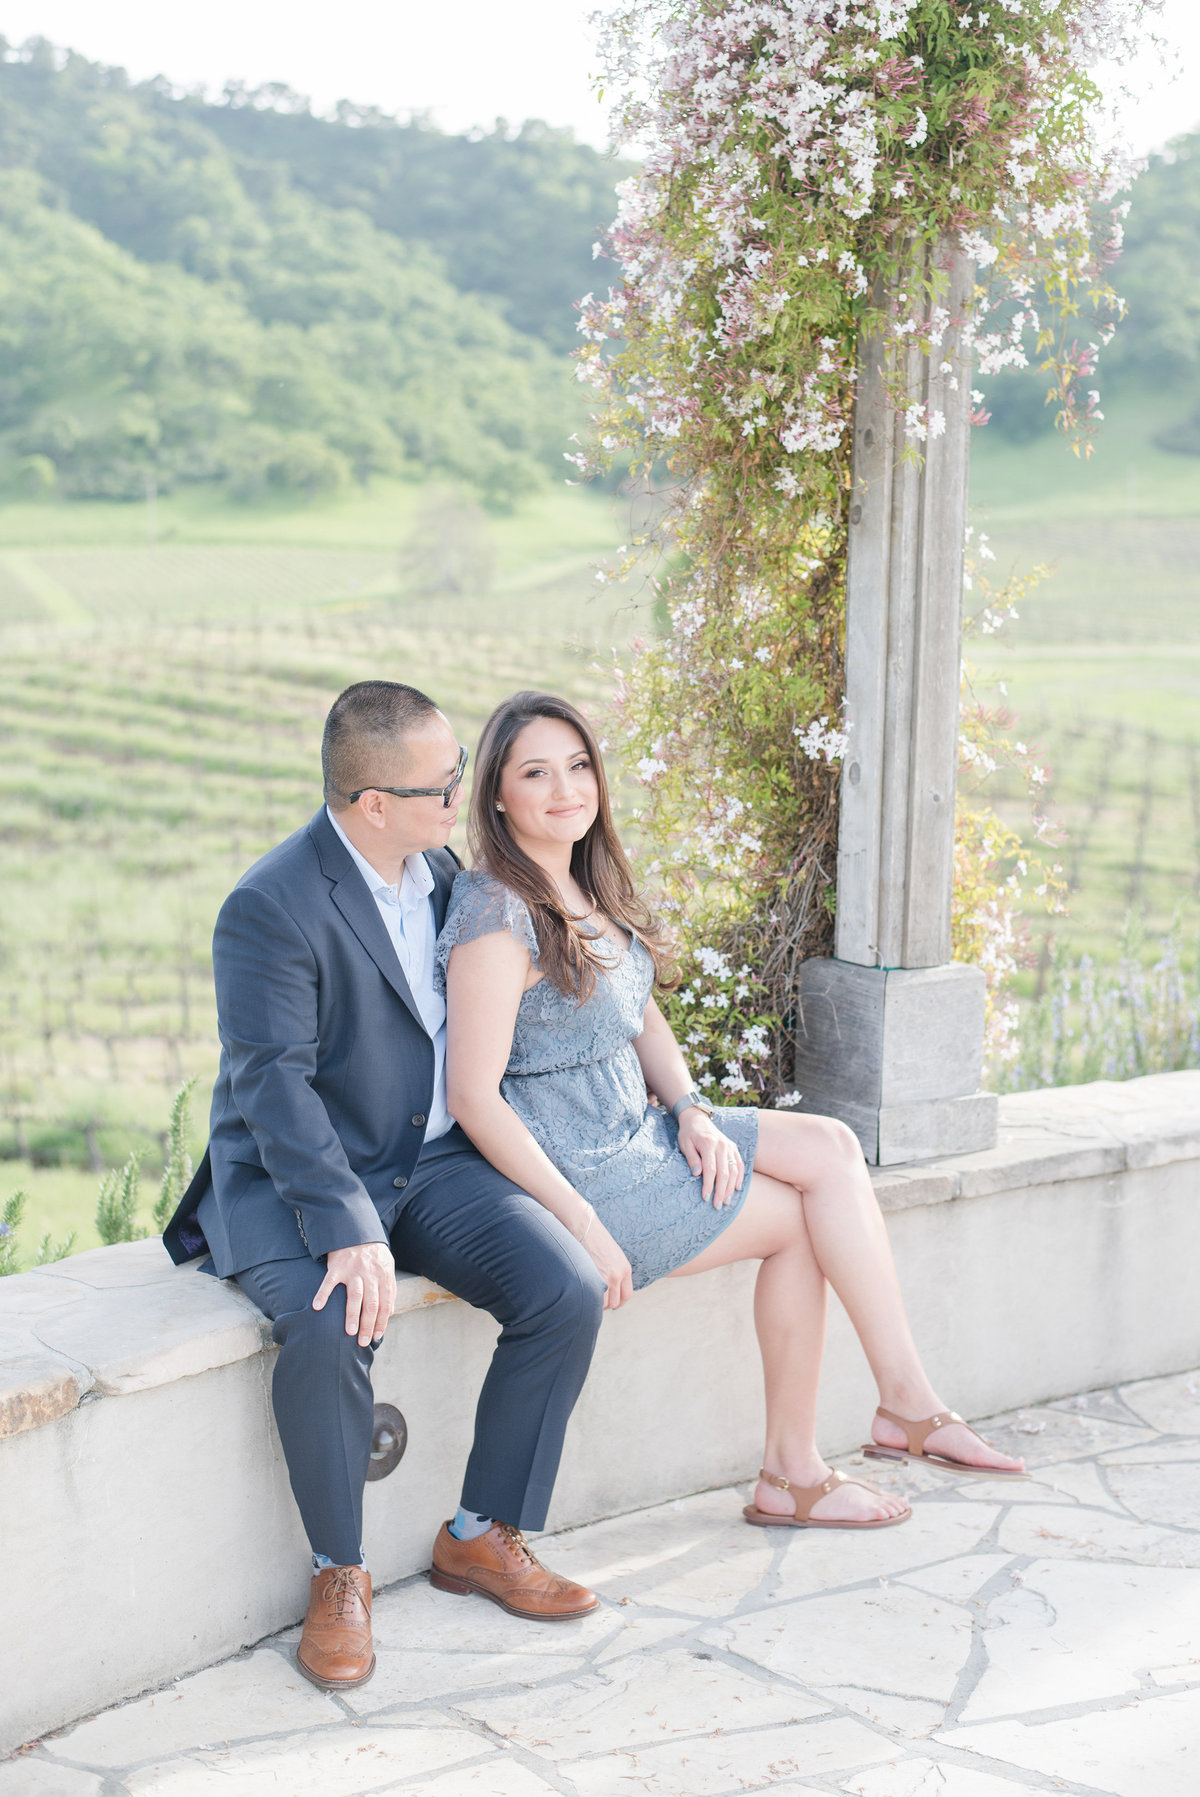 ClosLaChanceWinery-Engagement-QuiannaMarie-59